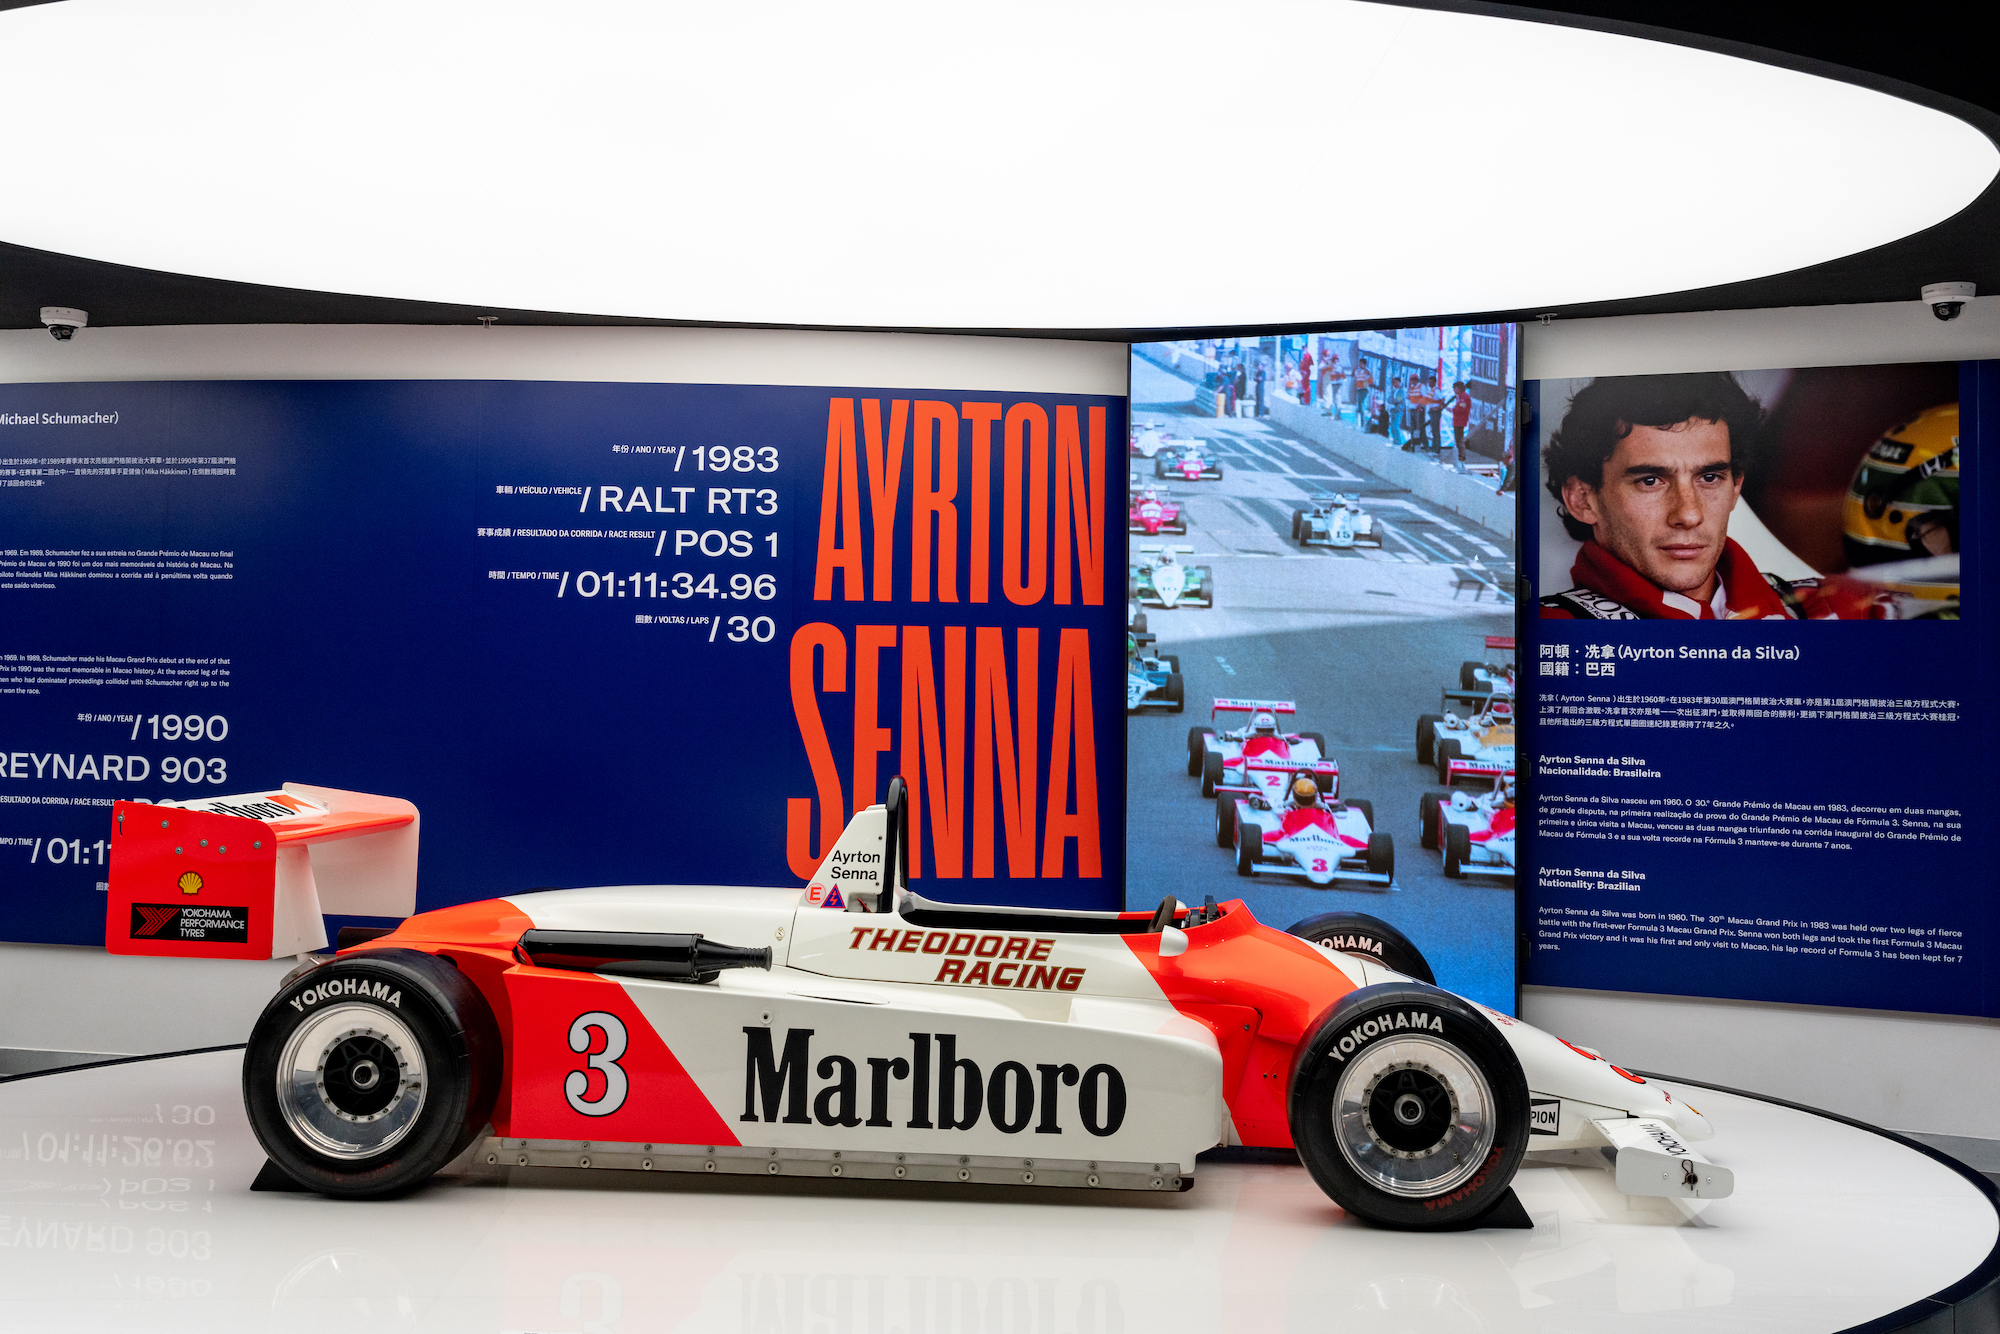 Ayrton Senna's Ralt RT3 which was his first and only race car at Macao Grand Prix